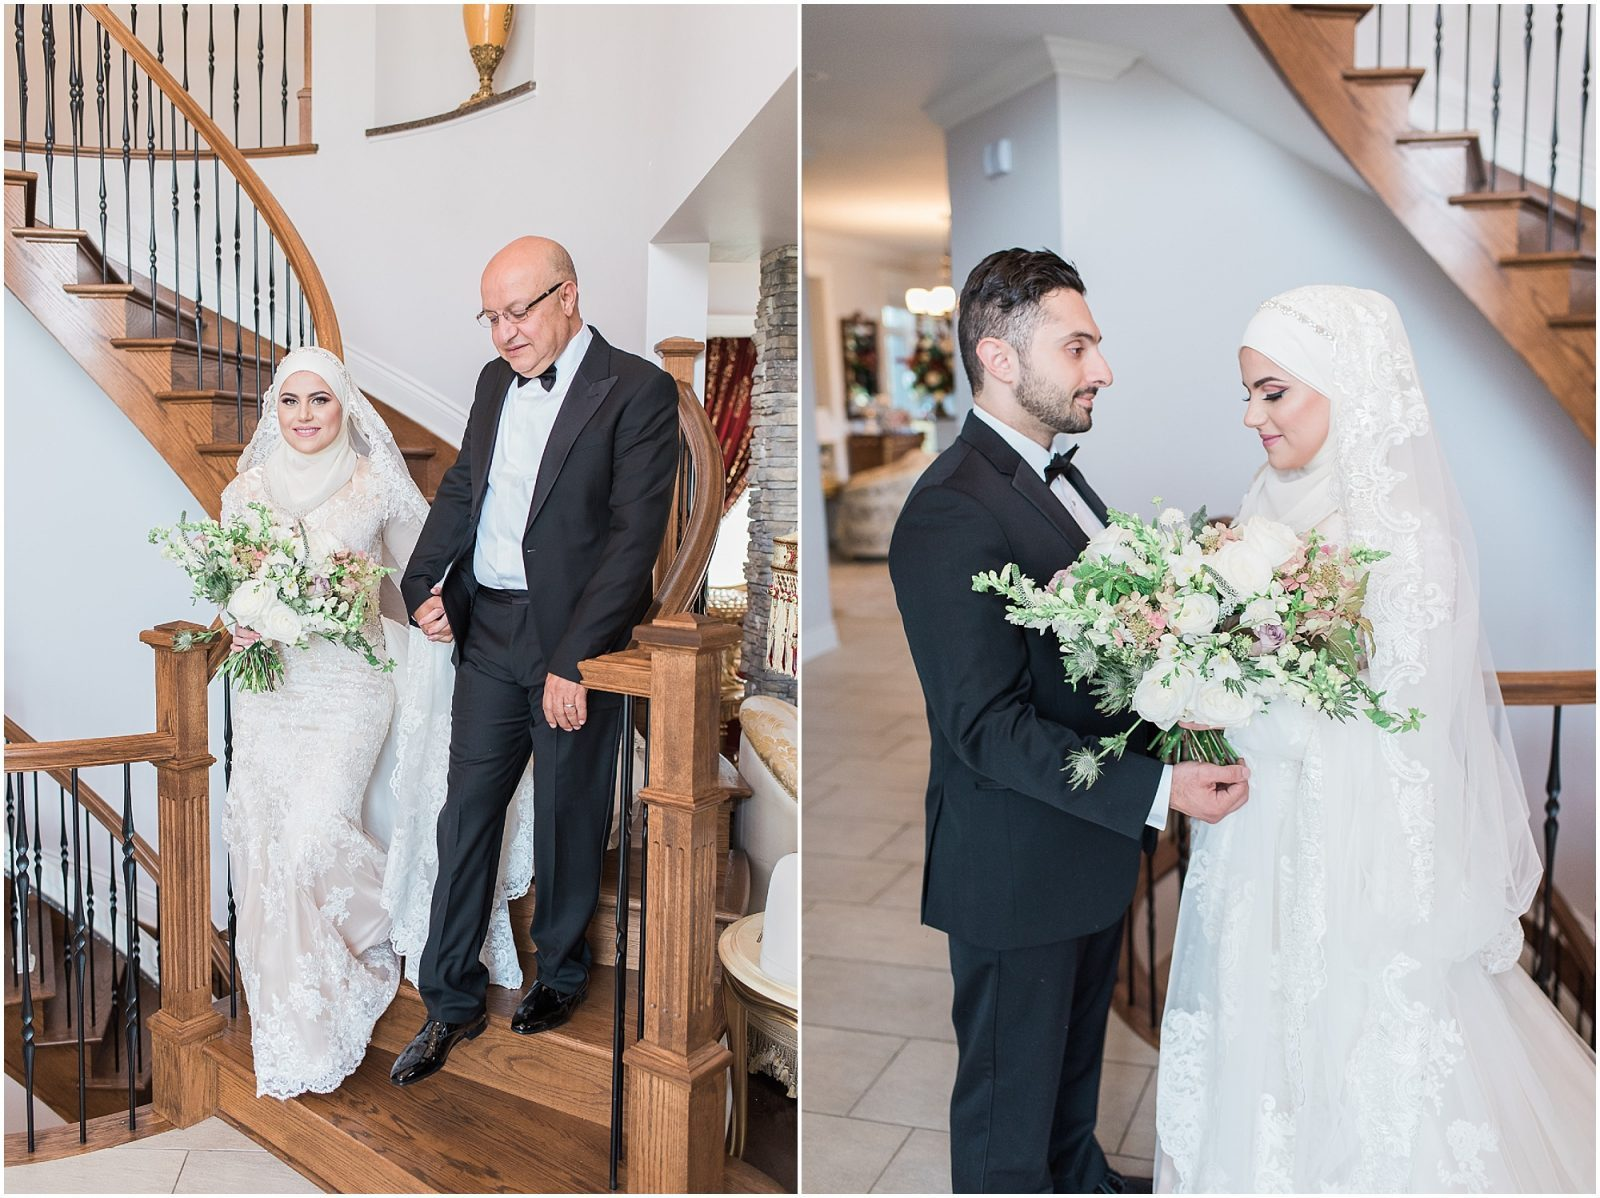 0023 Chateau Laurier Wedding - Hijabi Bride - Sireen & Anas- Ottawa_PhotosbyEmmaH.jpg